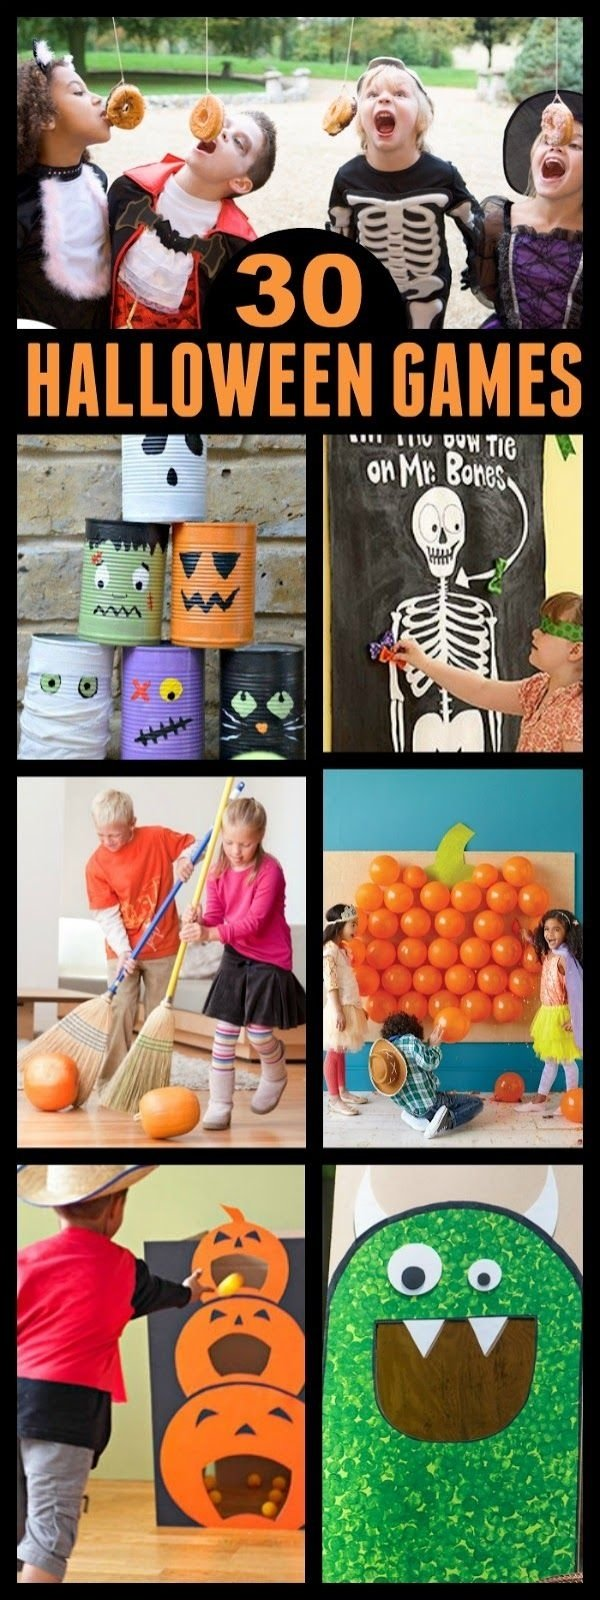 10 Gorgeous Halloween Party Ideas For Toddlers halloween games for kids halloween games game ideas and 30th 1 2020